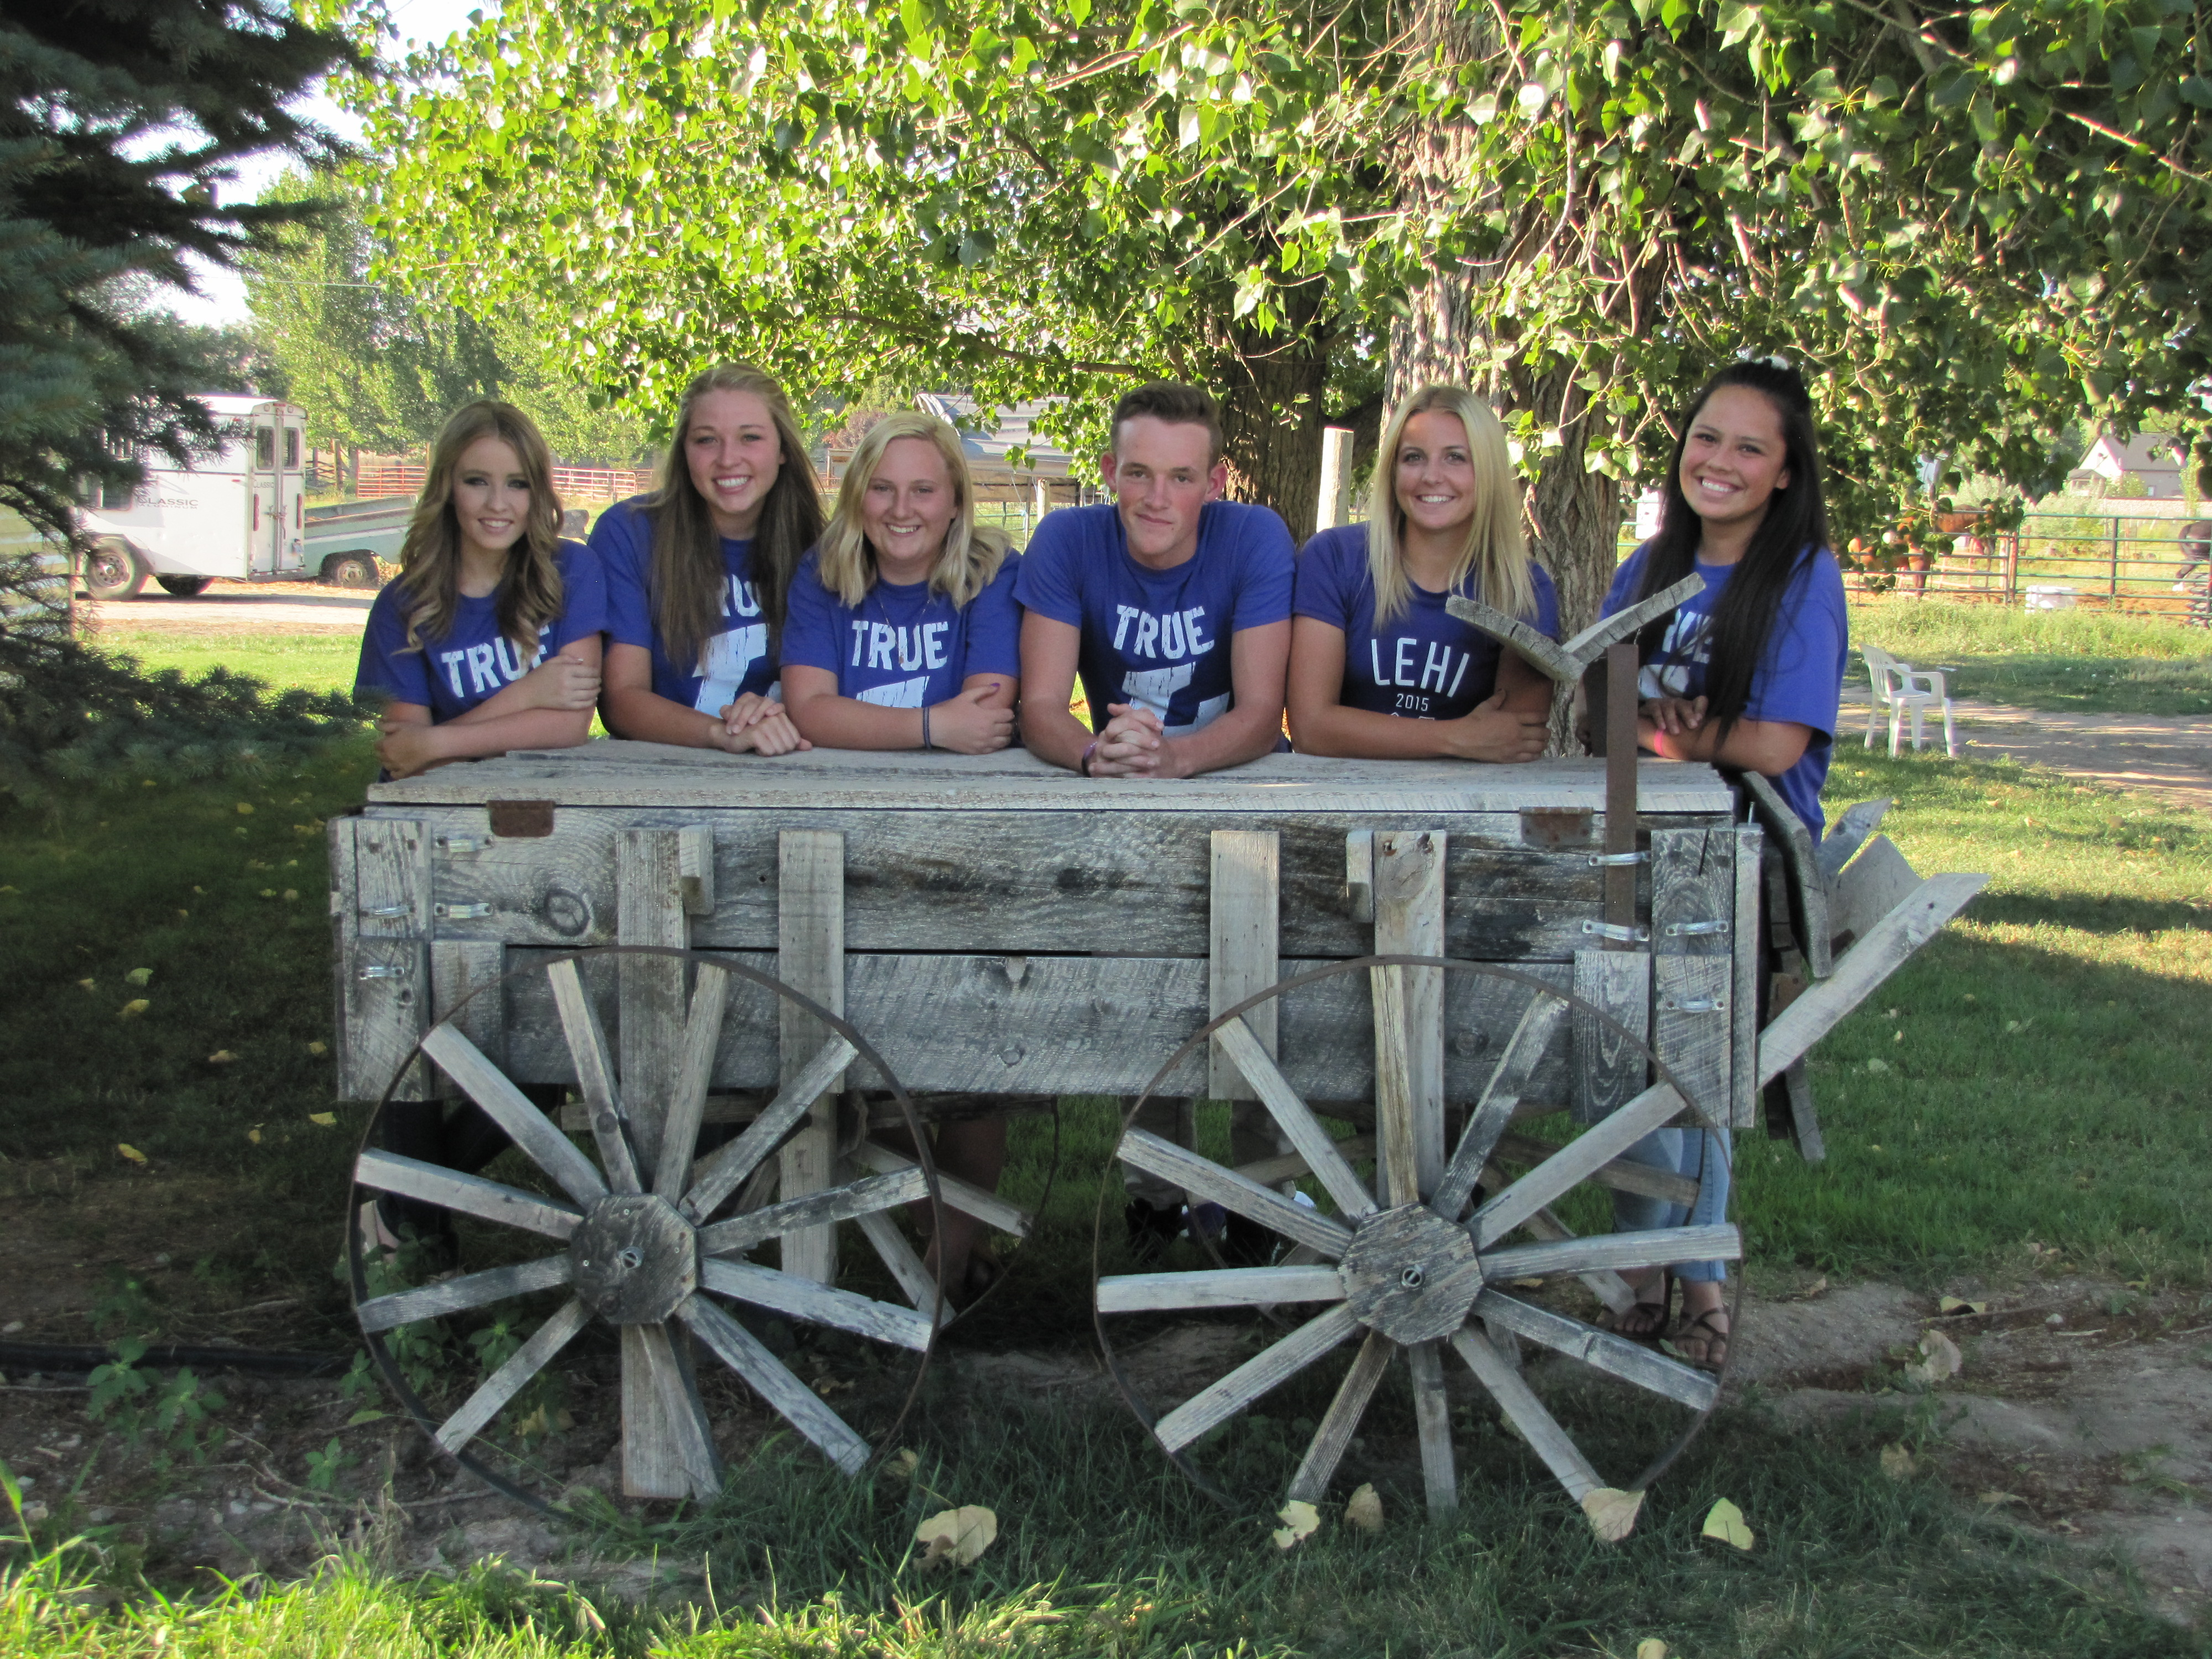 LHS Studentbody officers Aug 18